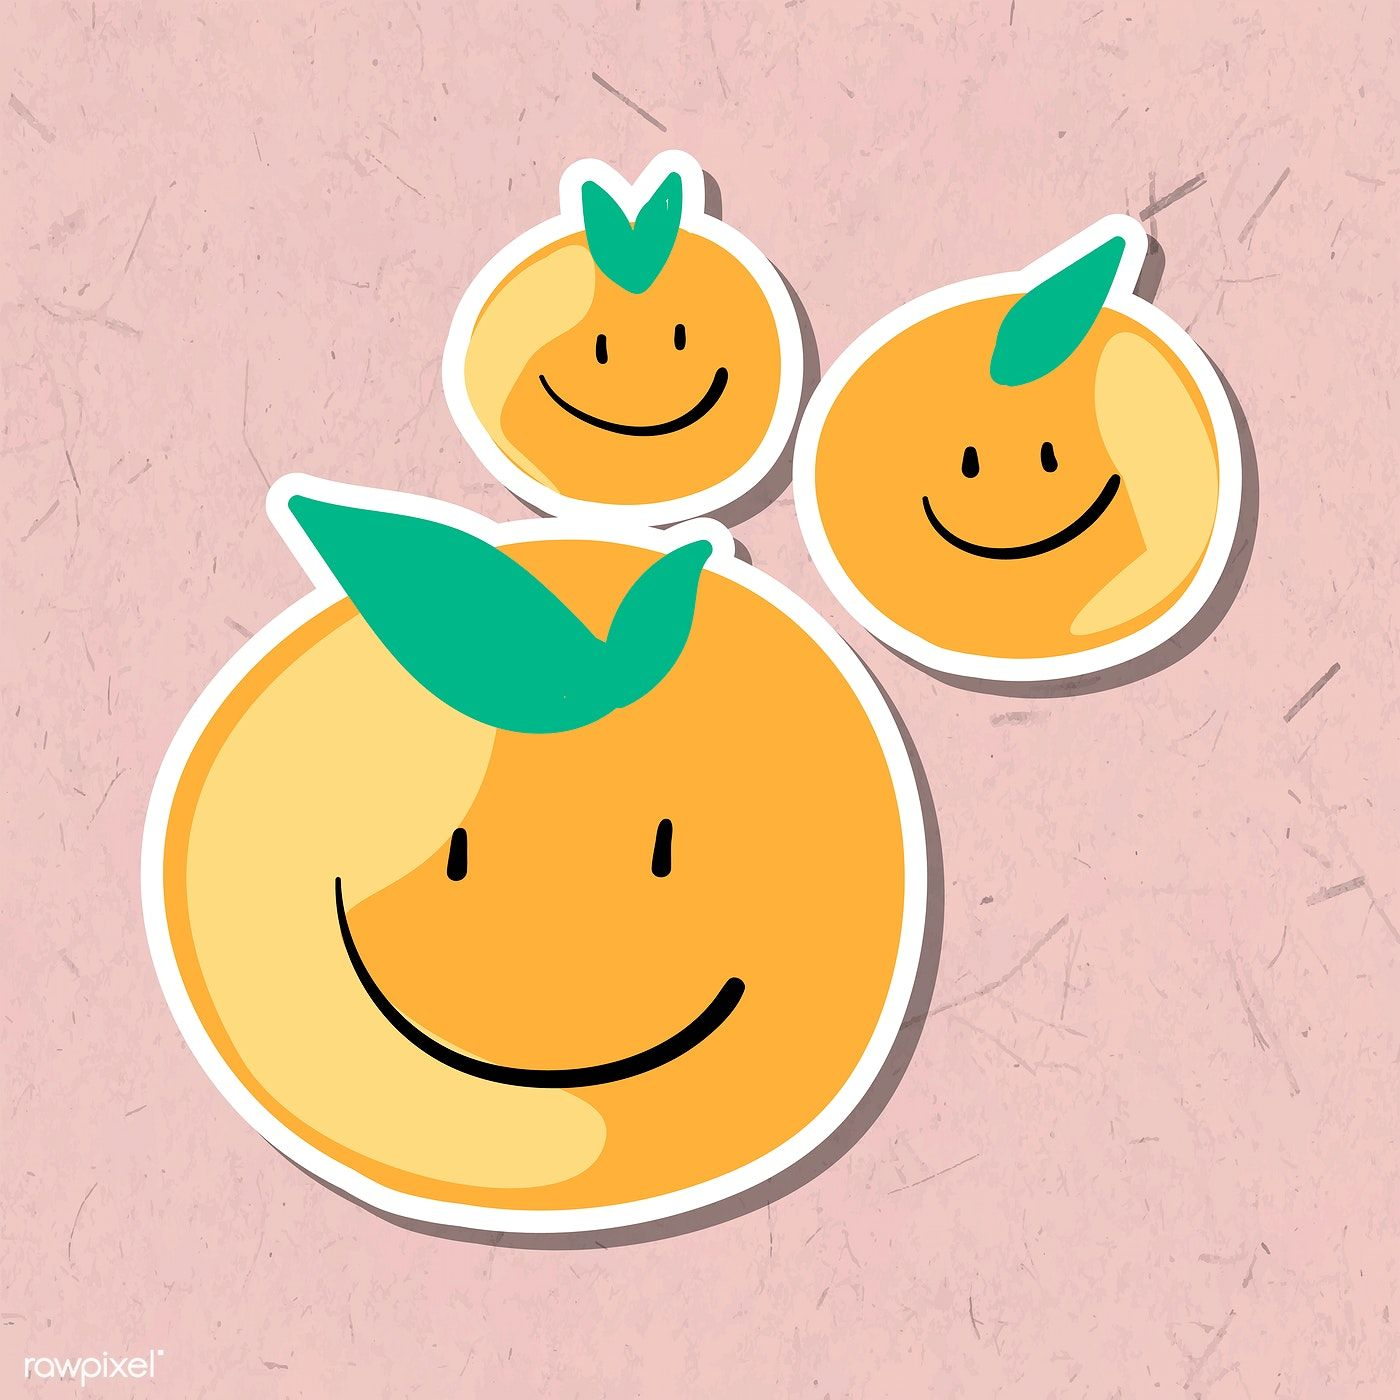 Cute Smiling Tangerine Sticker Design Element Vector Free Image By Rawpixel Com Pimmy